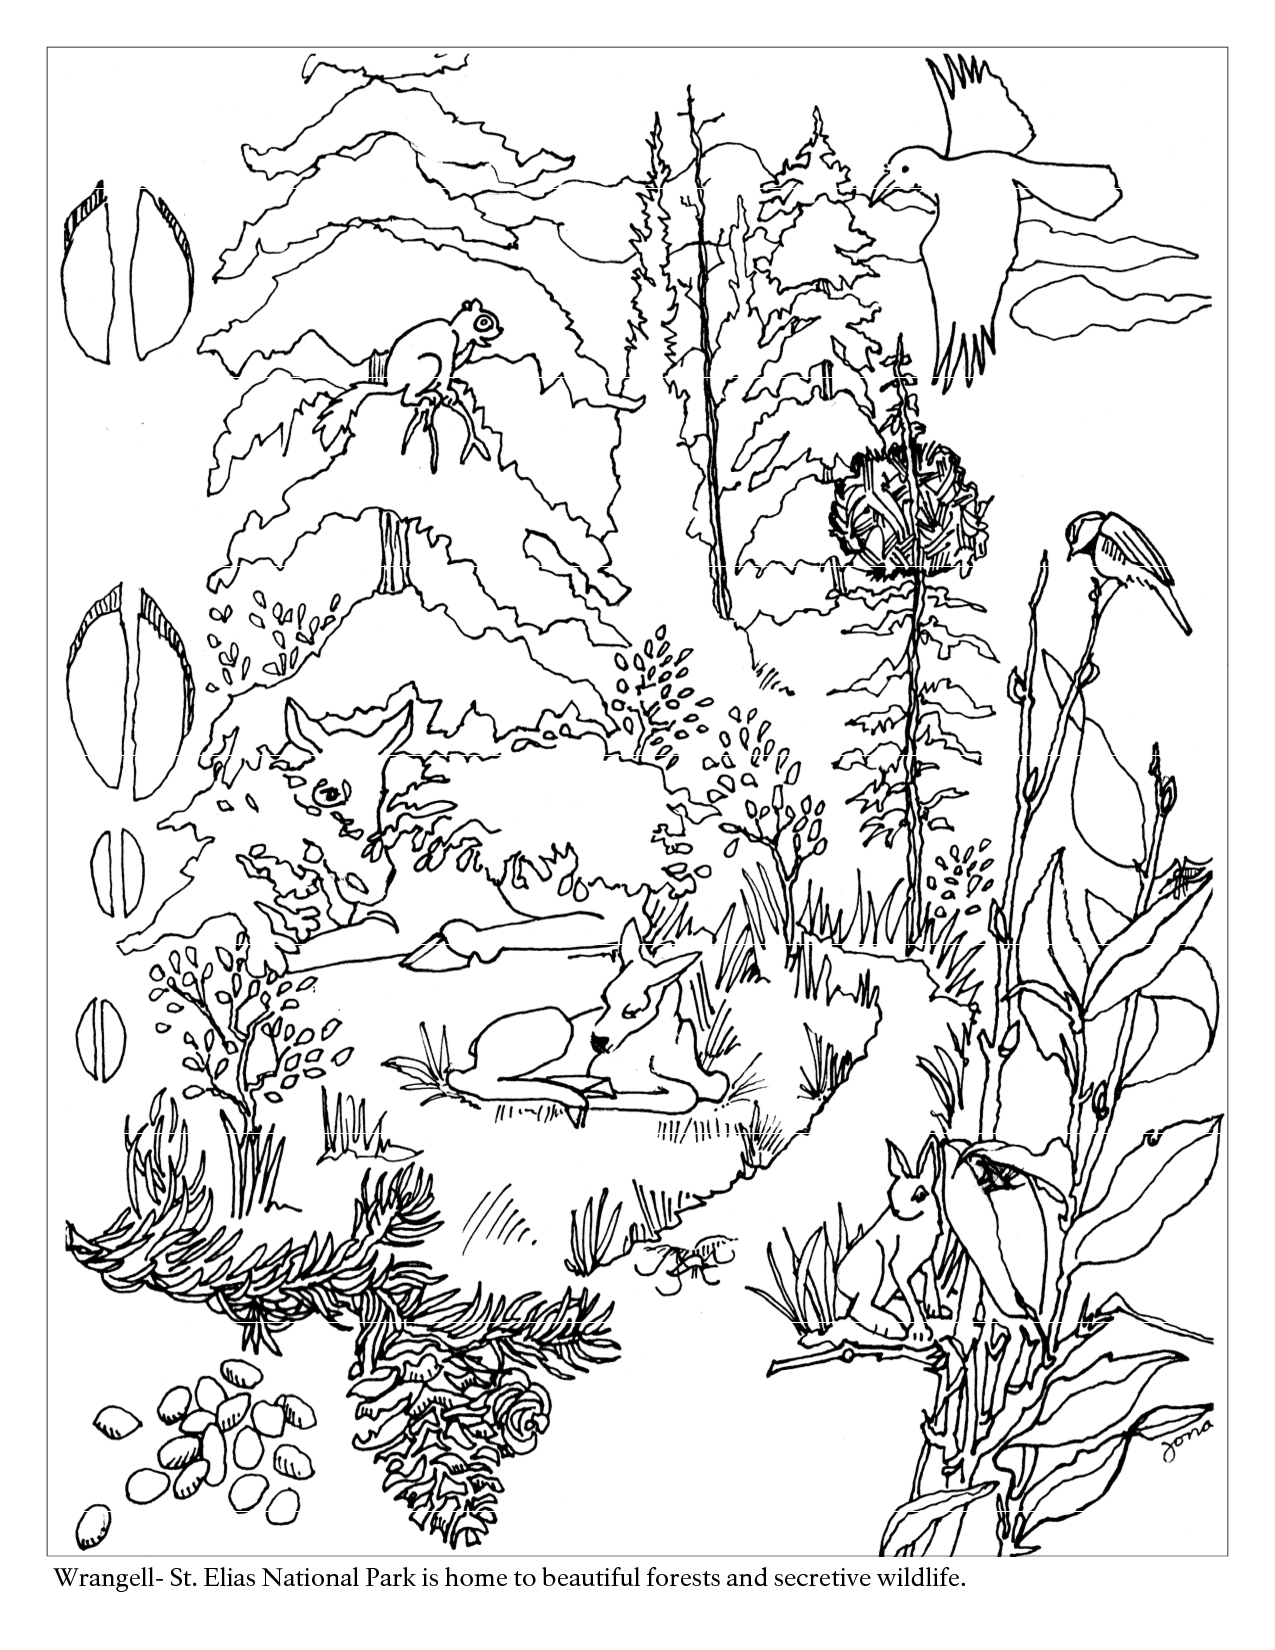 forest coloring page forest coloring pages download and print forest coloring forest coloring page